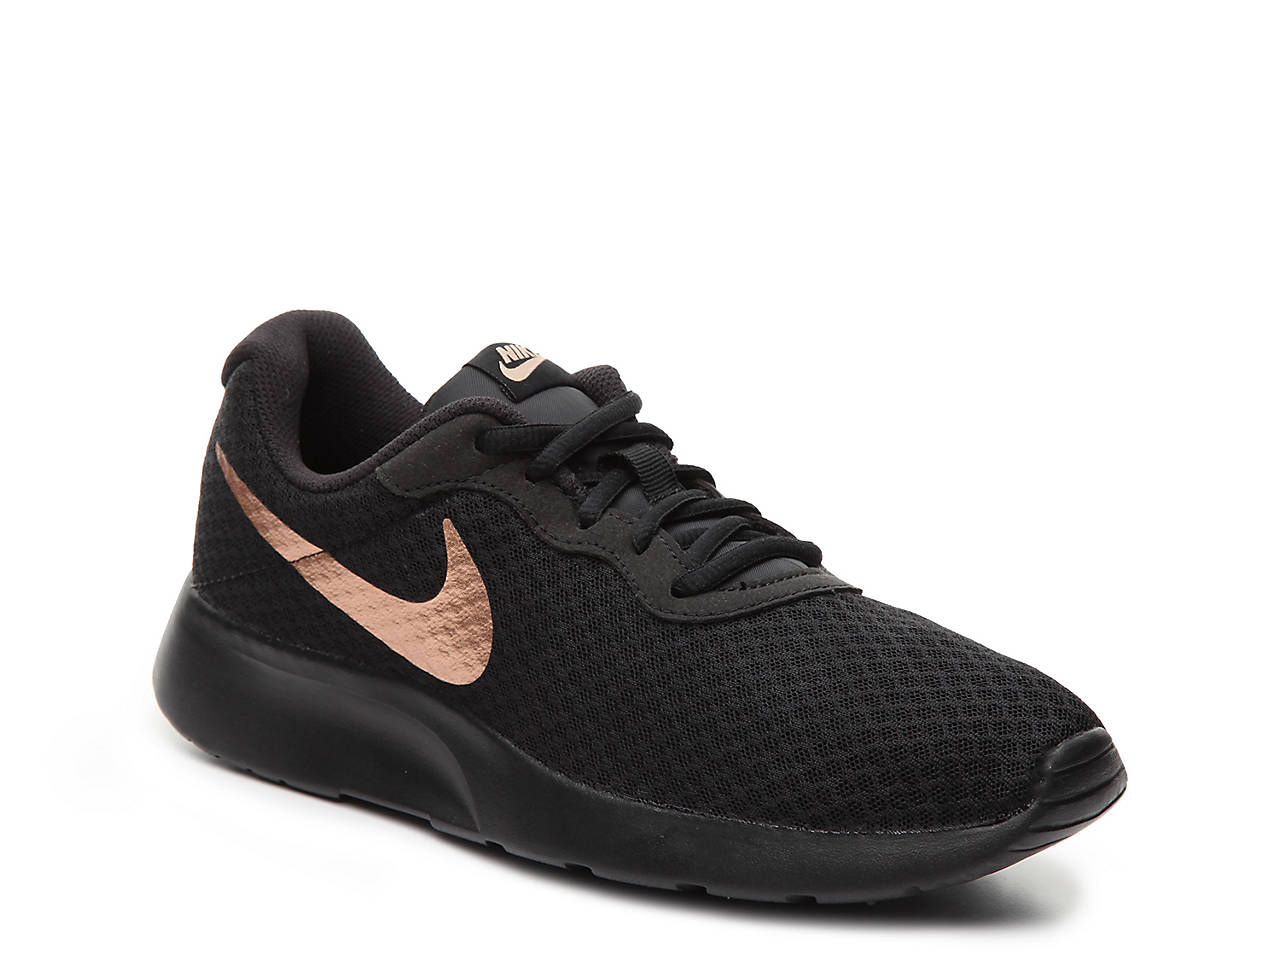 quality design 23297 94bc8 Nike Tanjun Sneaker - Womens Womens Shoes  DSW